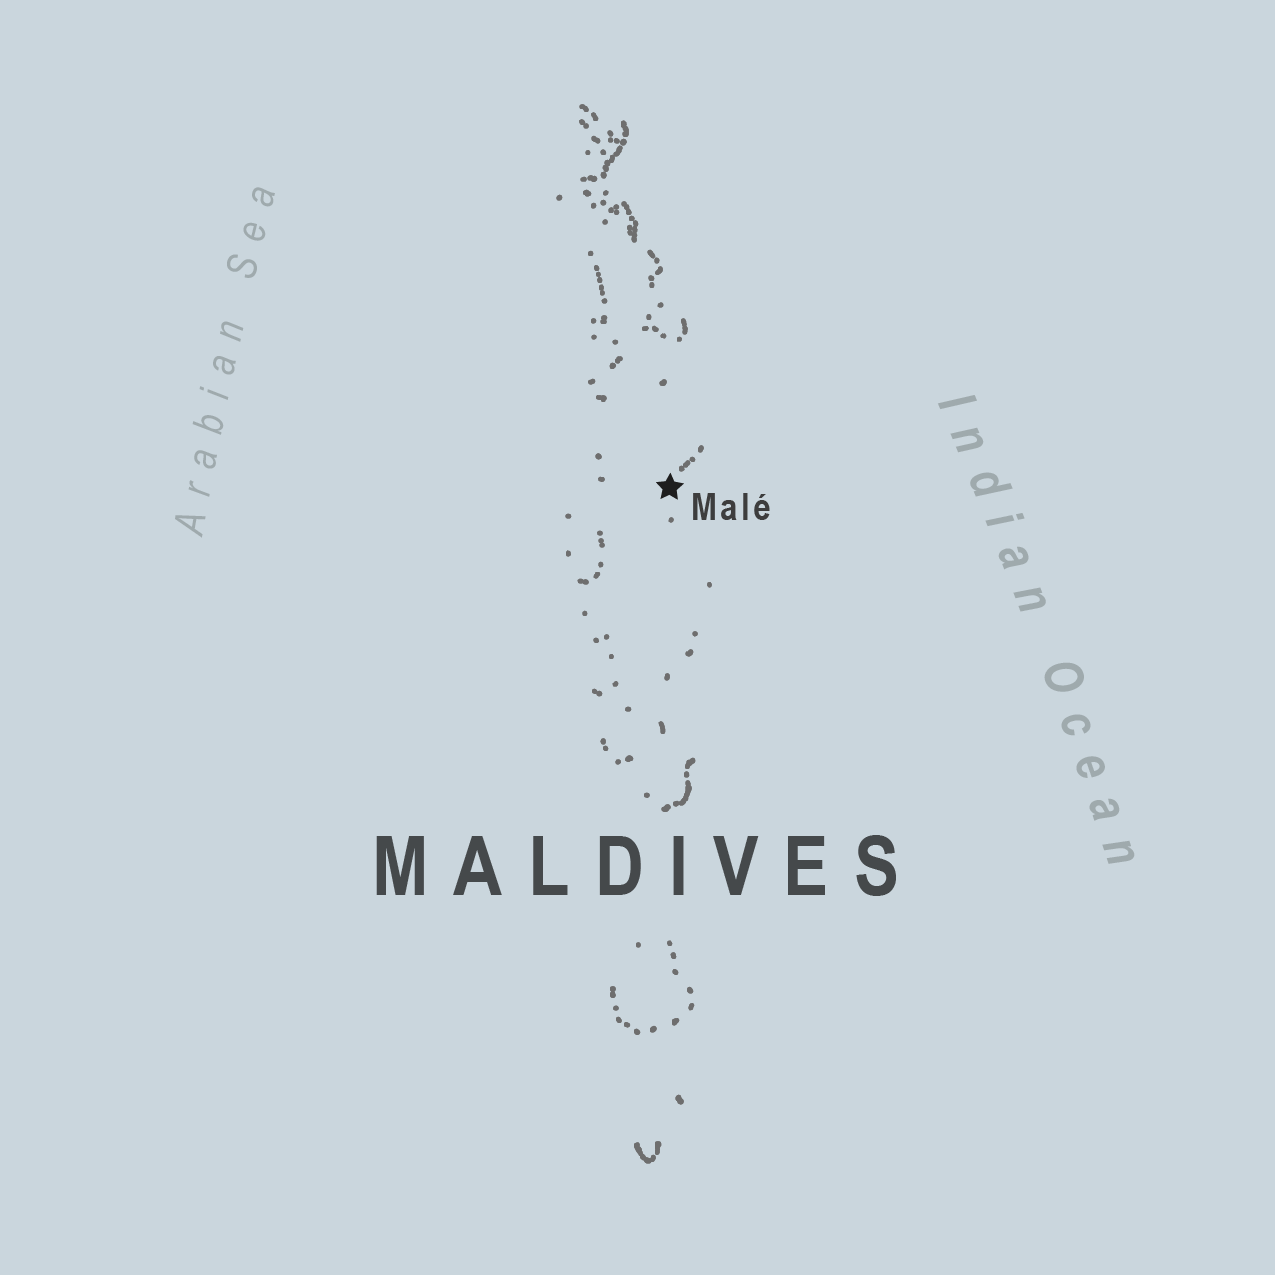 Map - Maldives